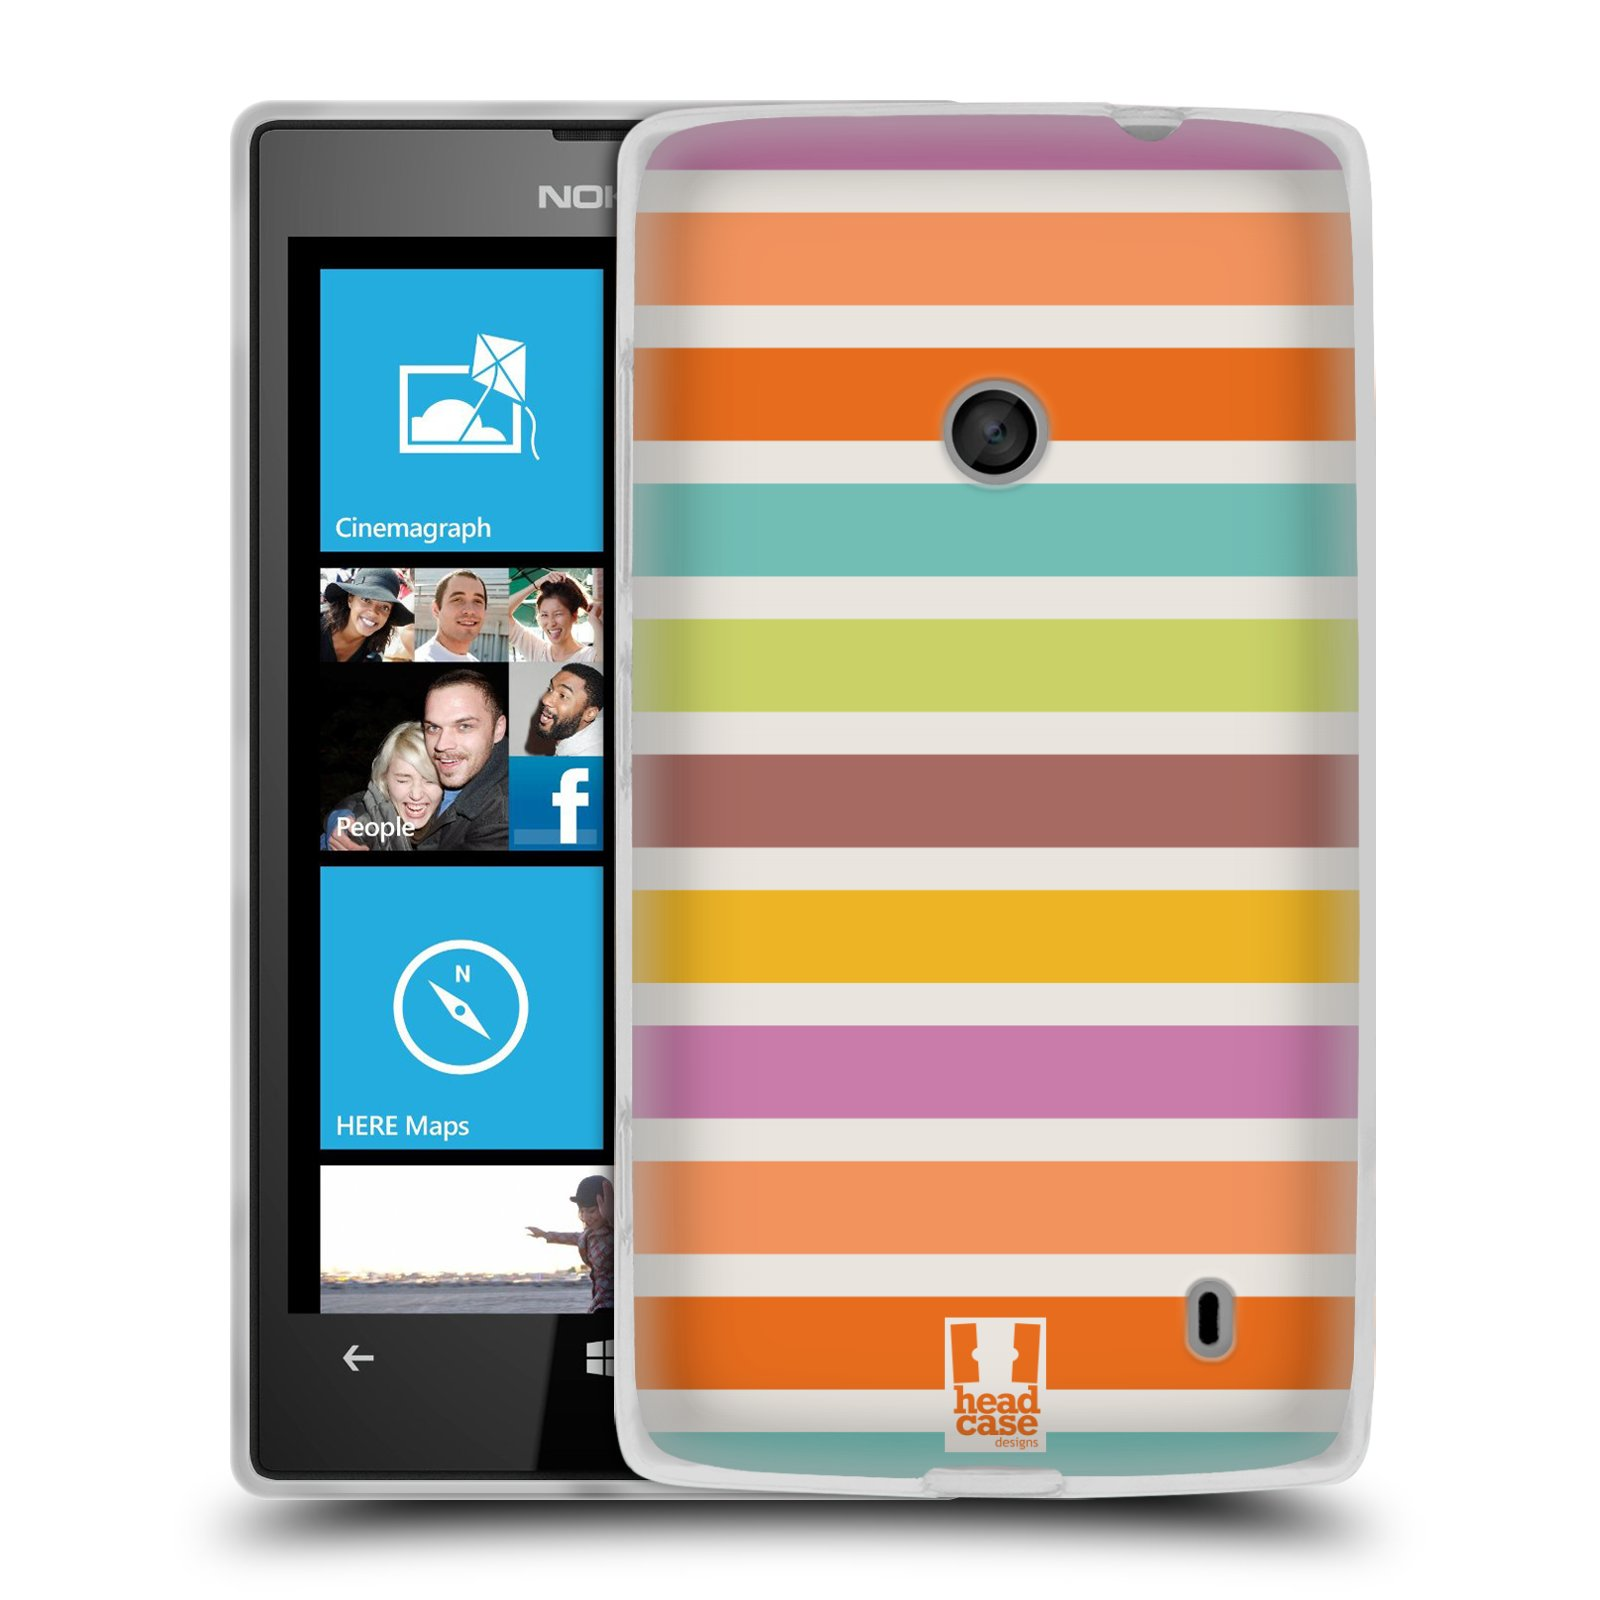 HEAD CASE STRIPES COLLECTION 2 SILICONE GEL CASE FOR NOKIA LUMIA 520